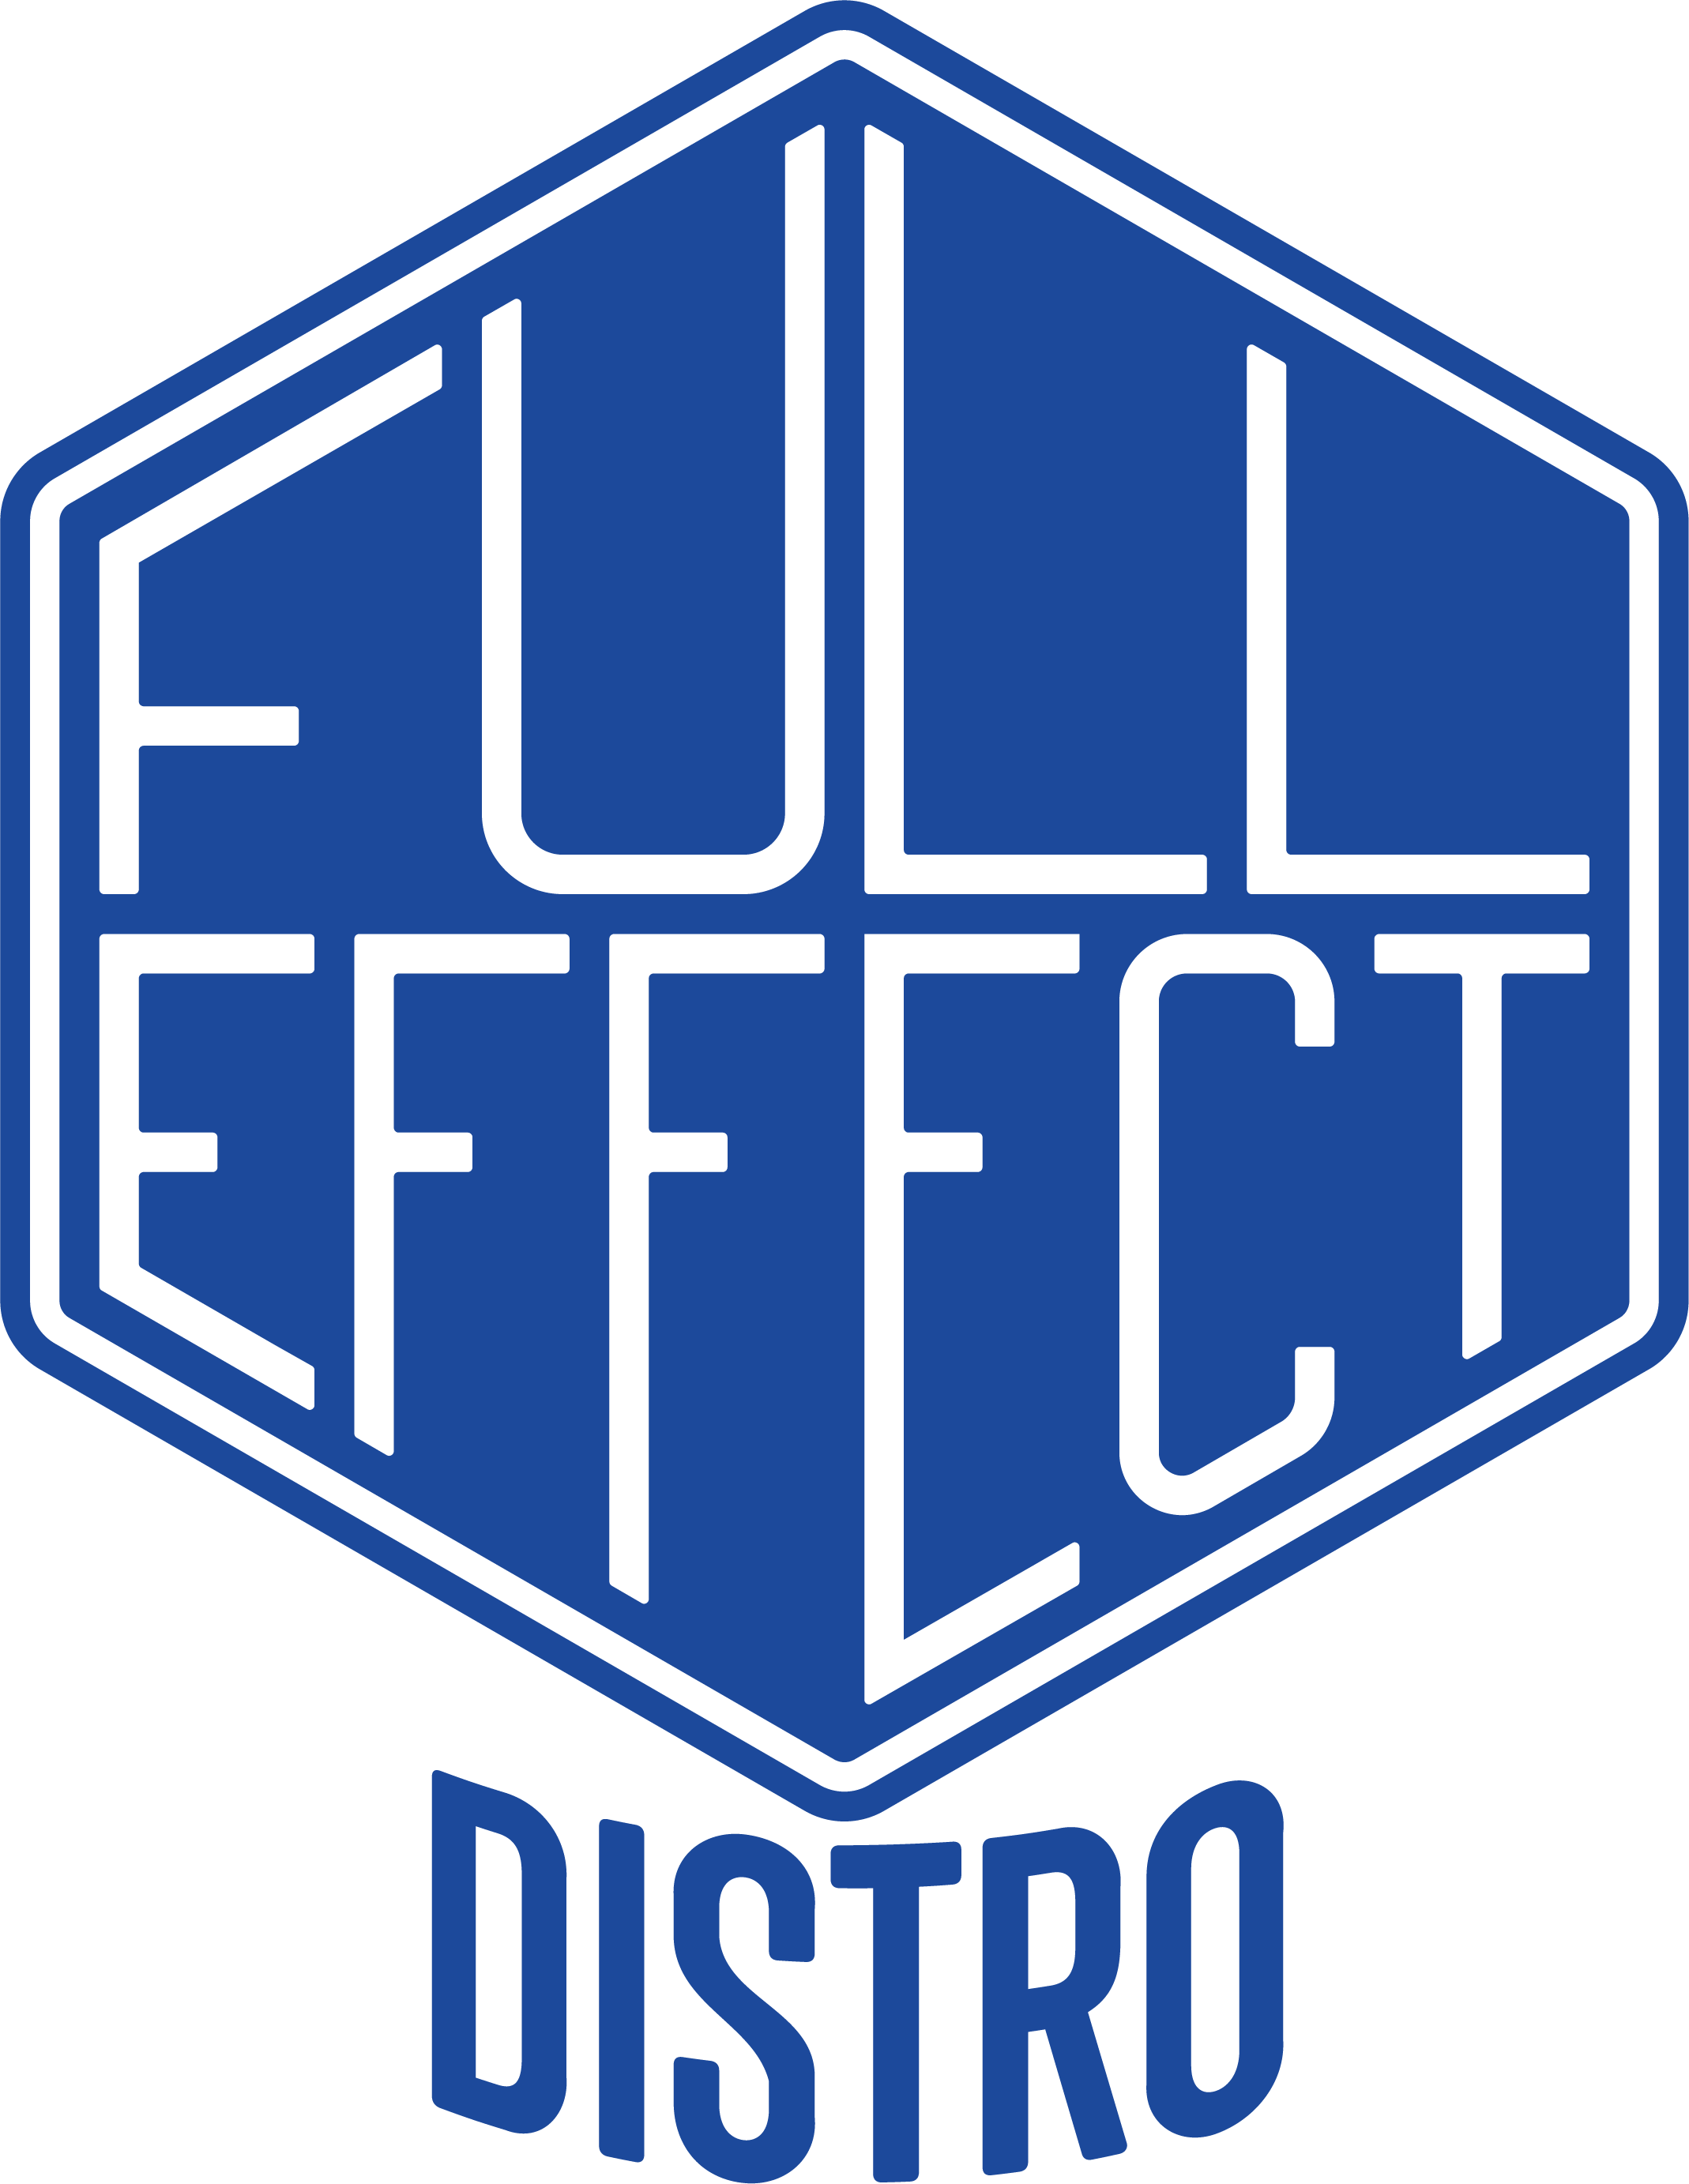 full-effect-distro-logo-5-14-2020.png